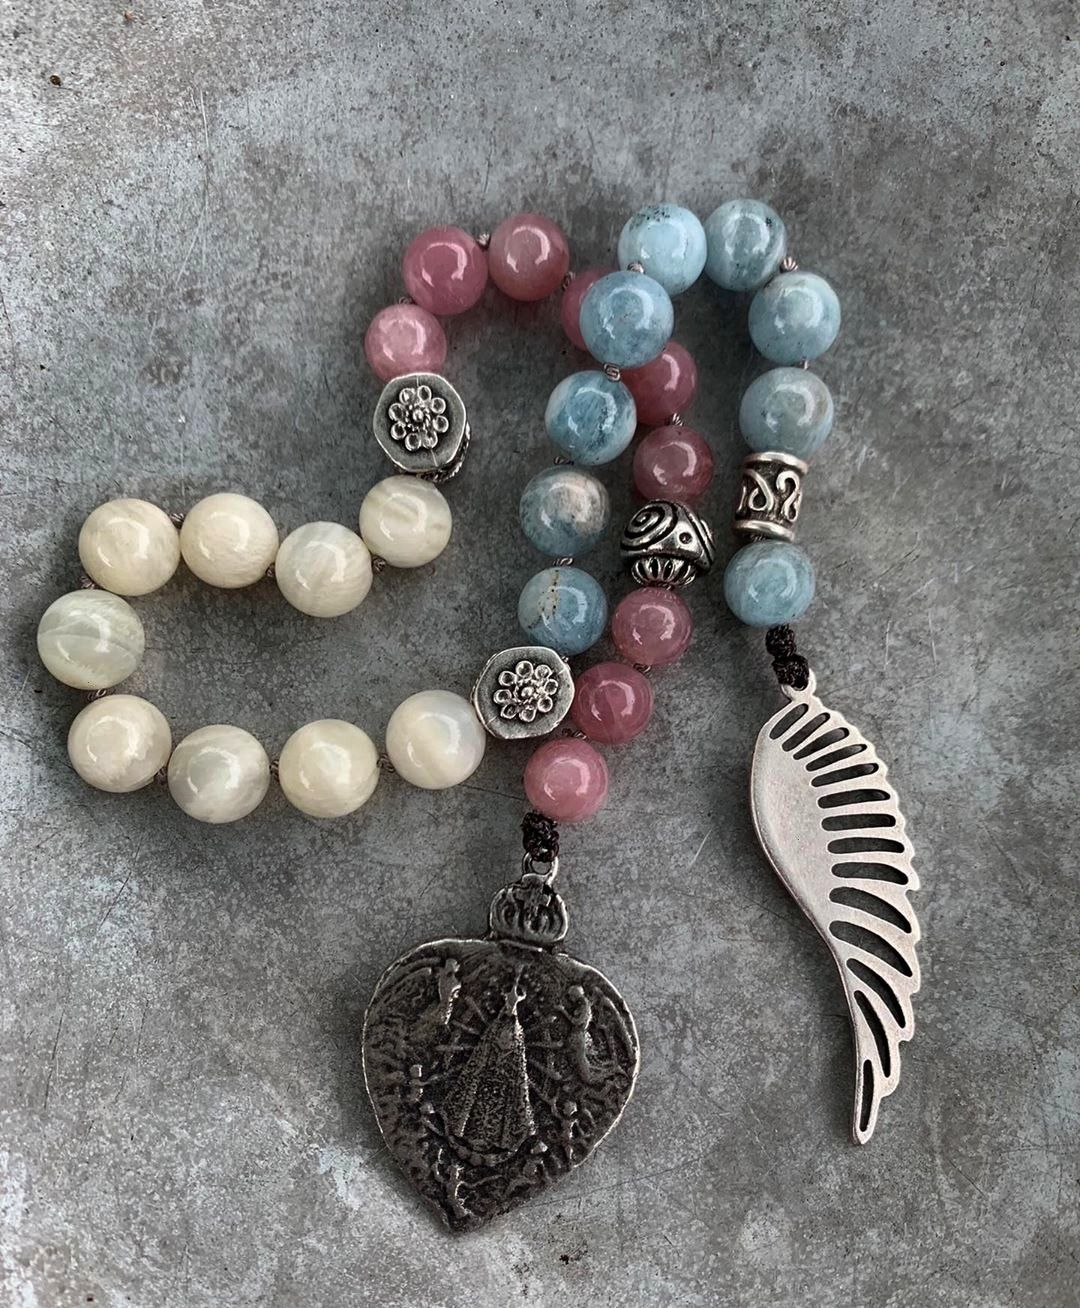 Rooted Woman on Instagram 27 Bead Hand Mala to Activate and Embody Self Compassion  Deep Rooted Woman on Instagram 27 Bead Hand Mala to Activate and Embody Self Compassio...